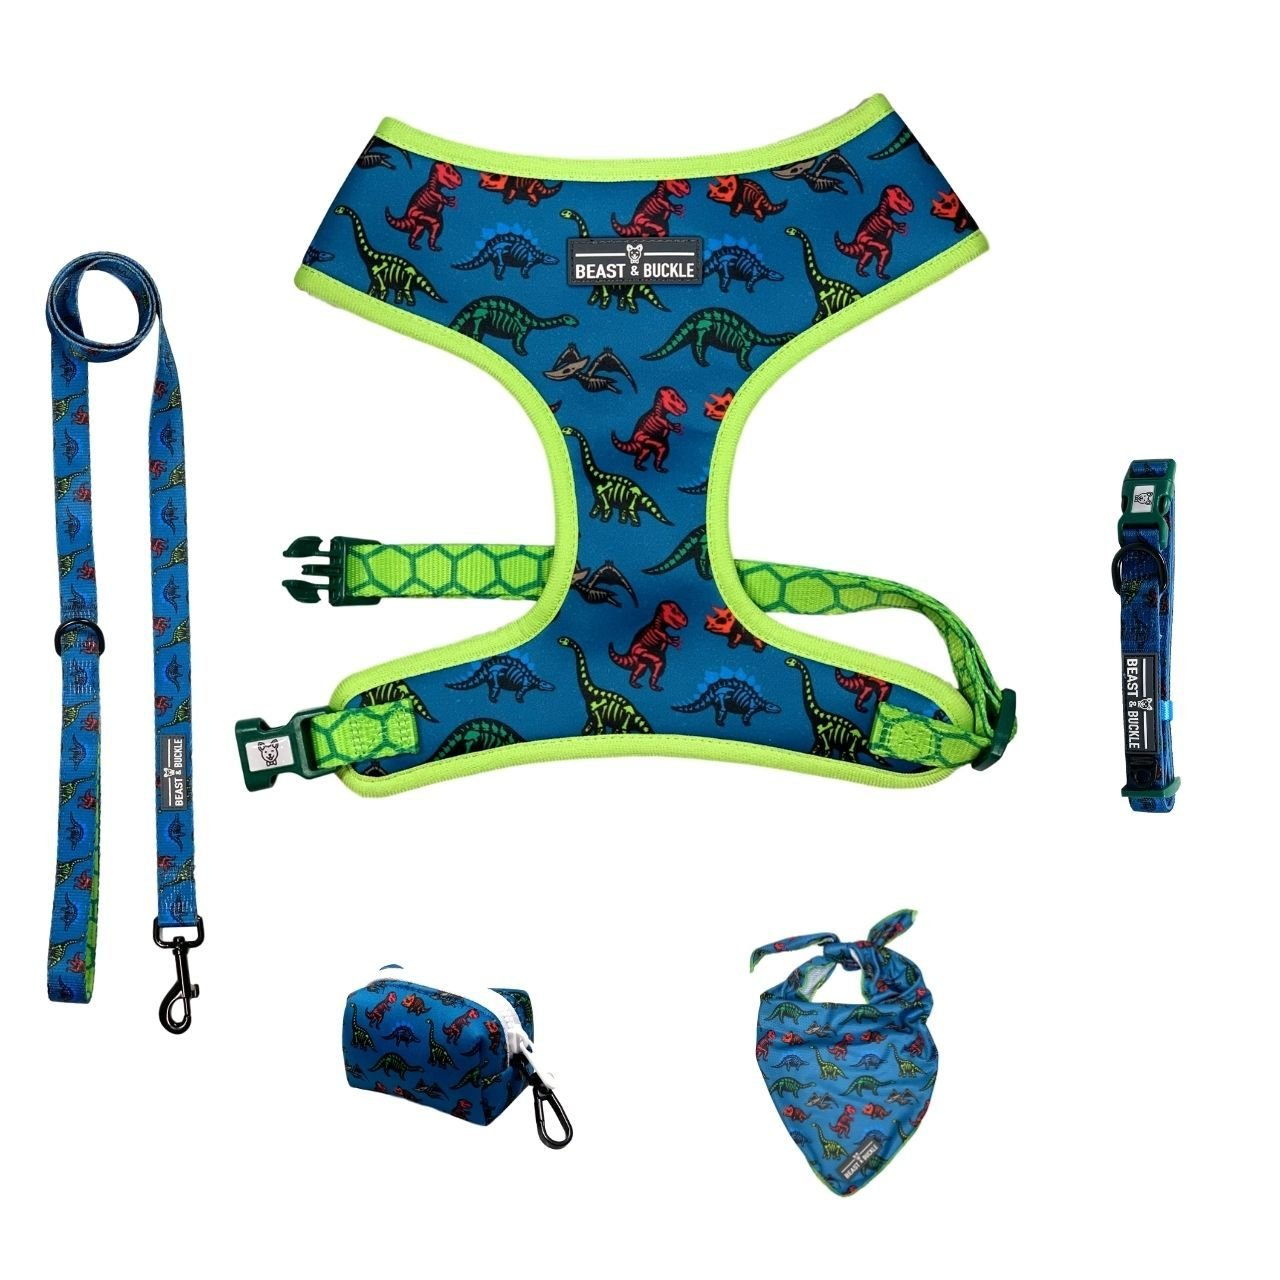 Dinosaur Classic Harness Collection Bundle - Beast & Buckle